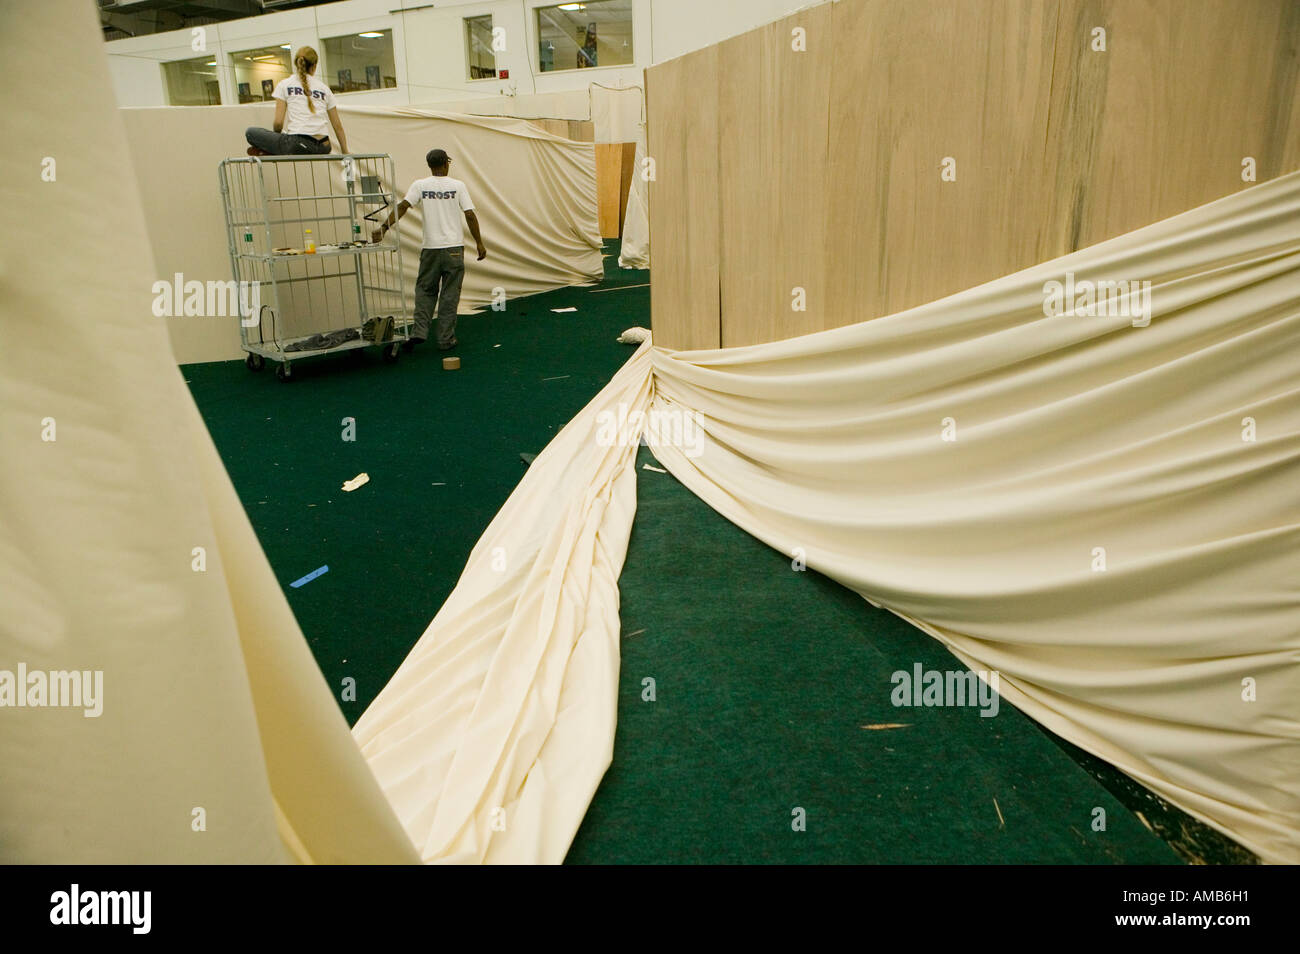 Setting up white drapes for an event 2005 - Stock Image